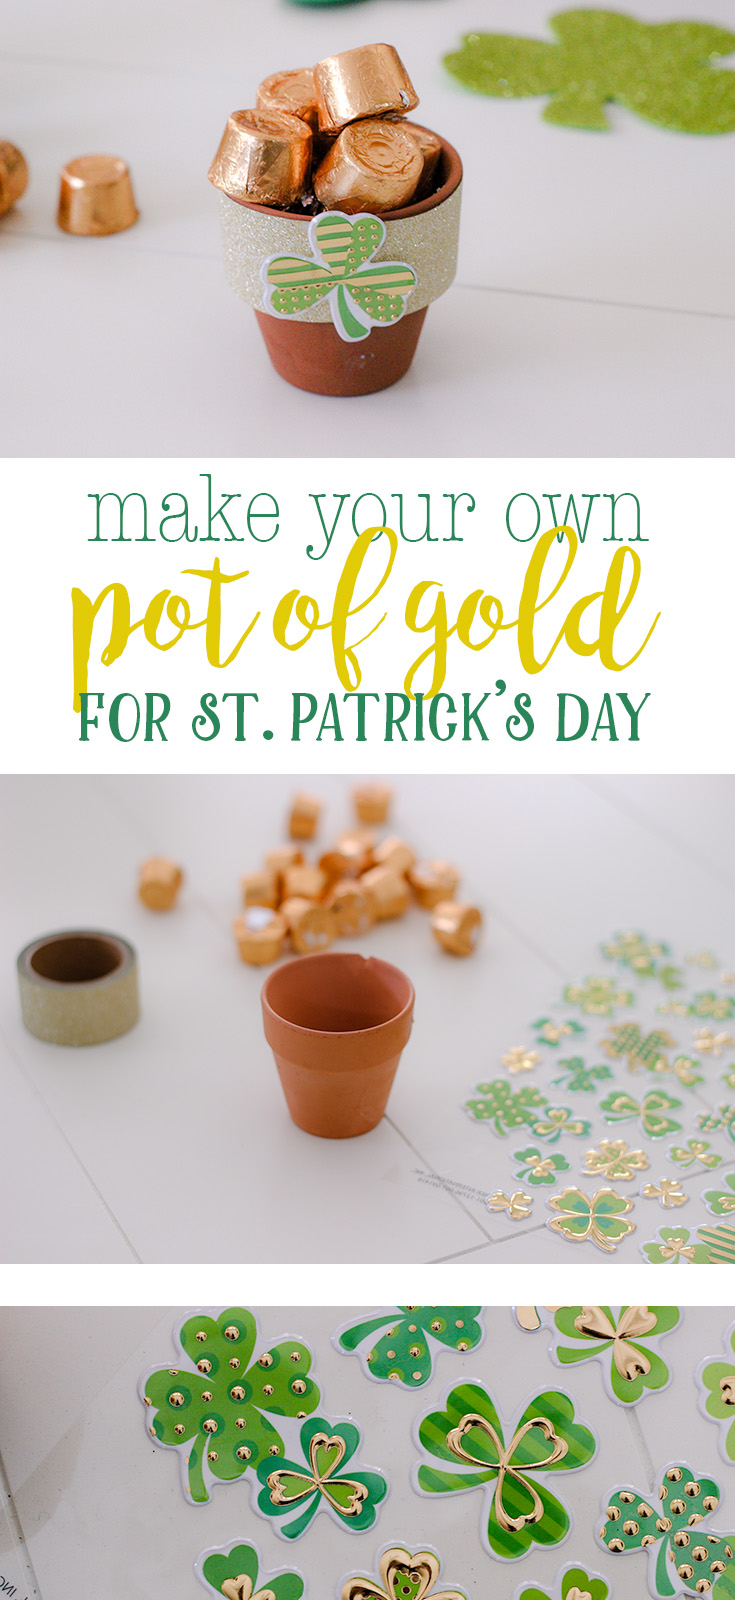 St. Patrick's Day craft Easy DIY for how to make your own pot of gold for St. Patrick's Day